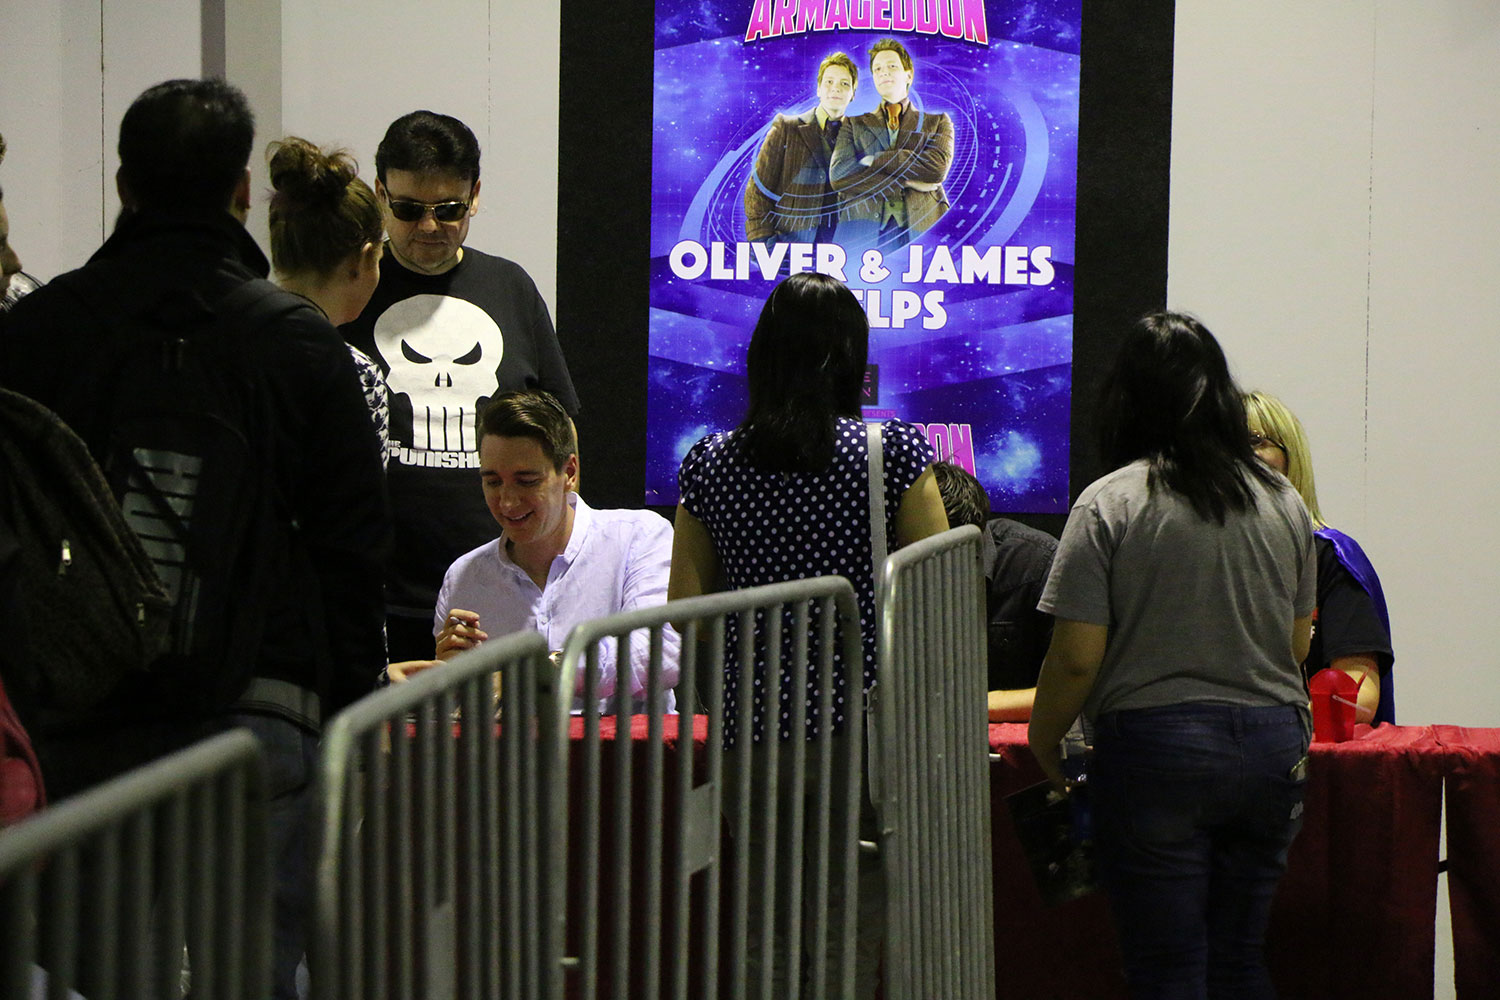 Armageddon Expo 2016 – Auckland – Oct 22 – James and Oliver Phelps Autograph Signing – 7 (Photo credit: Tracey Wong)